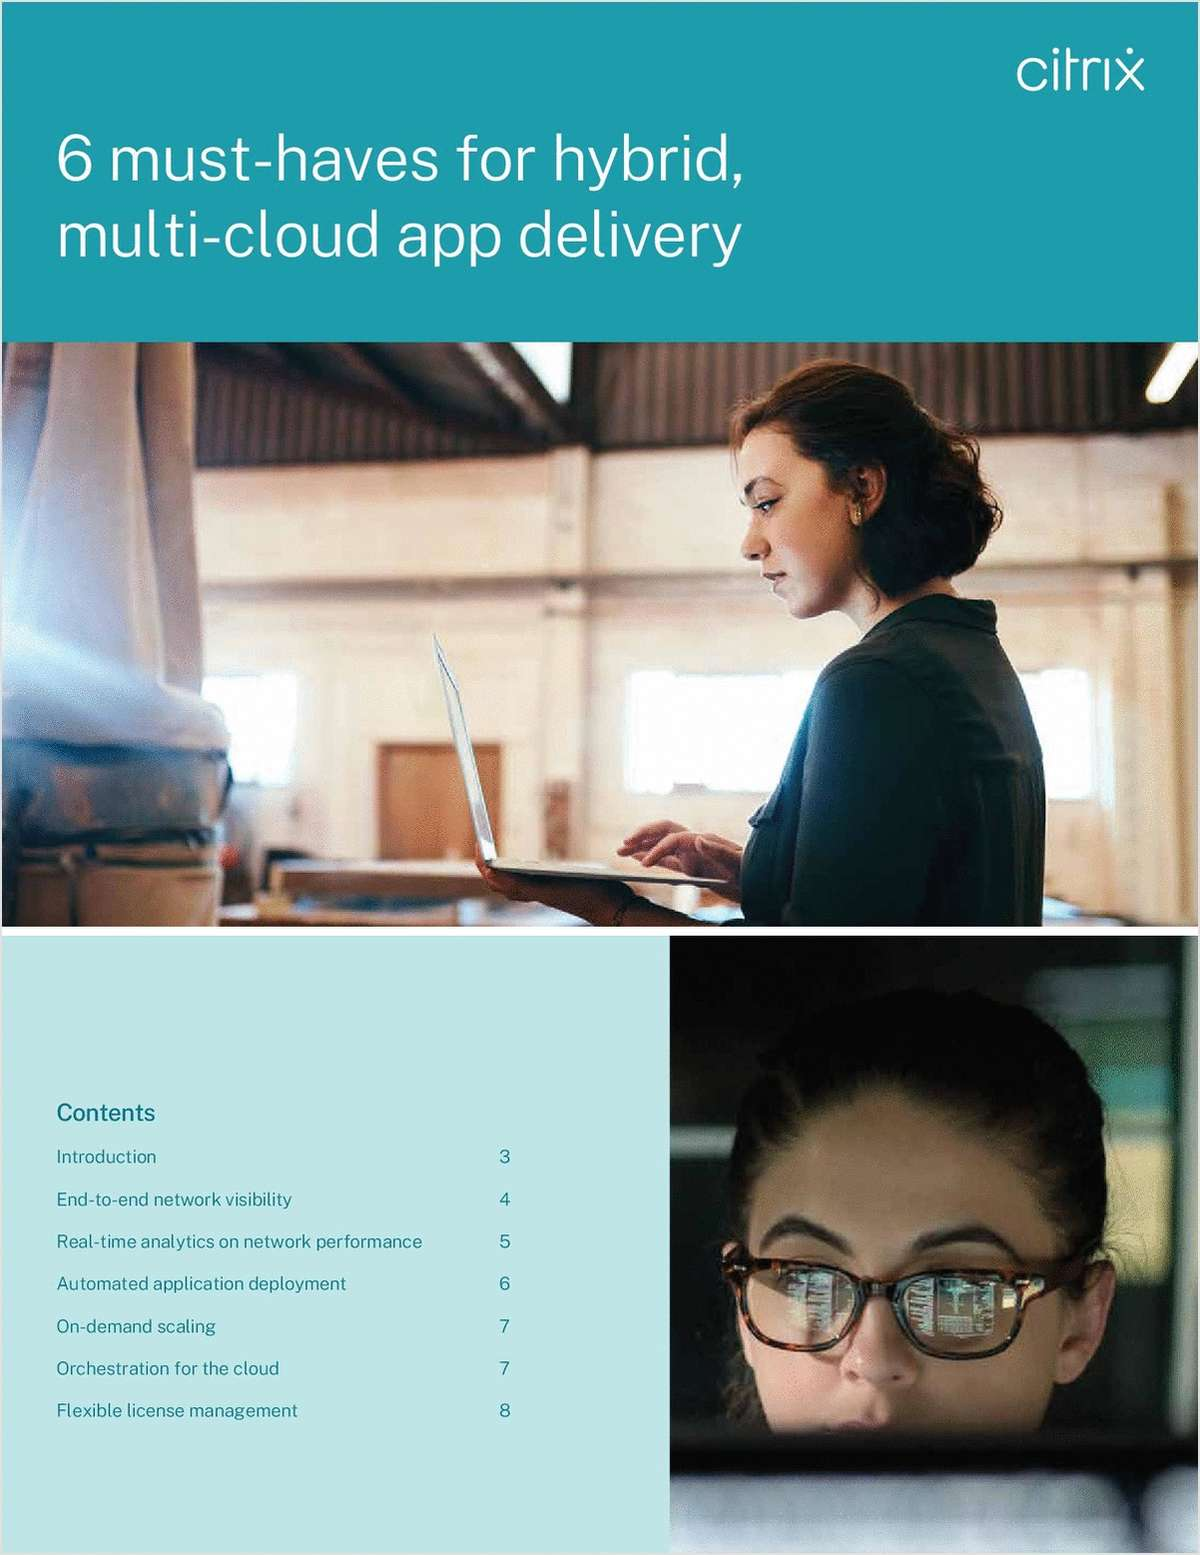 Six Must-Haves for Application Delivery in Hybrid- and Multi-Cloud Environments